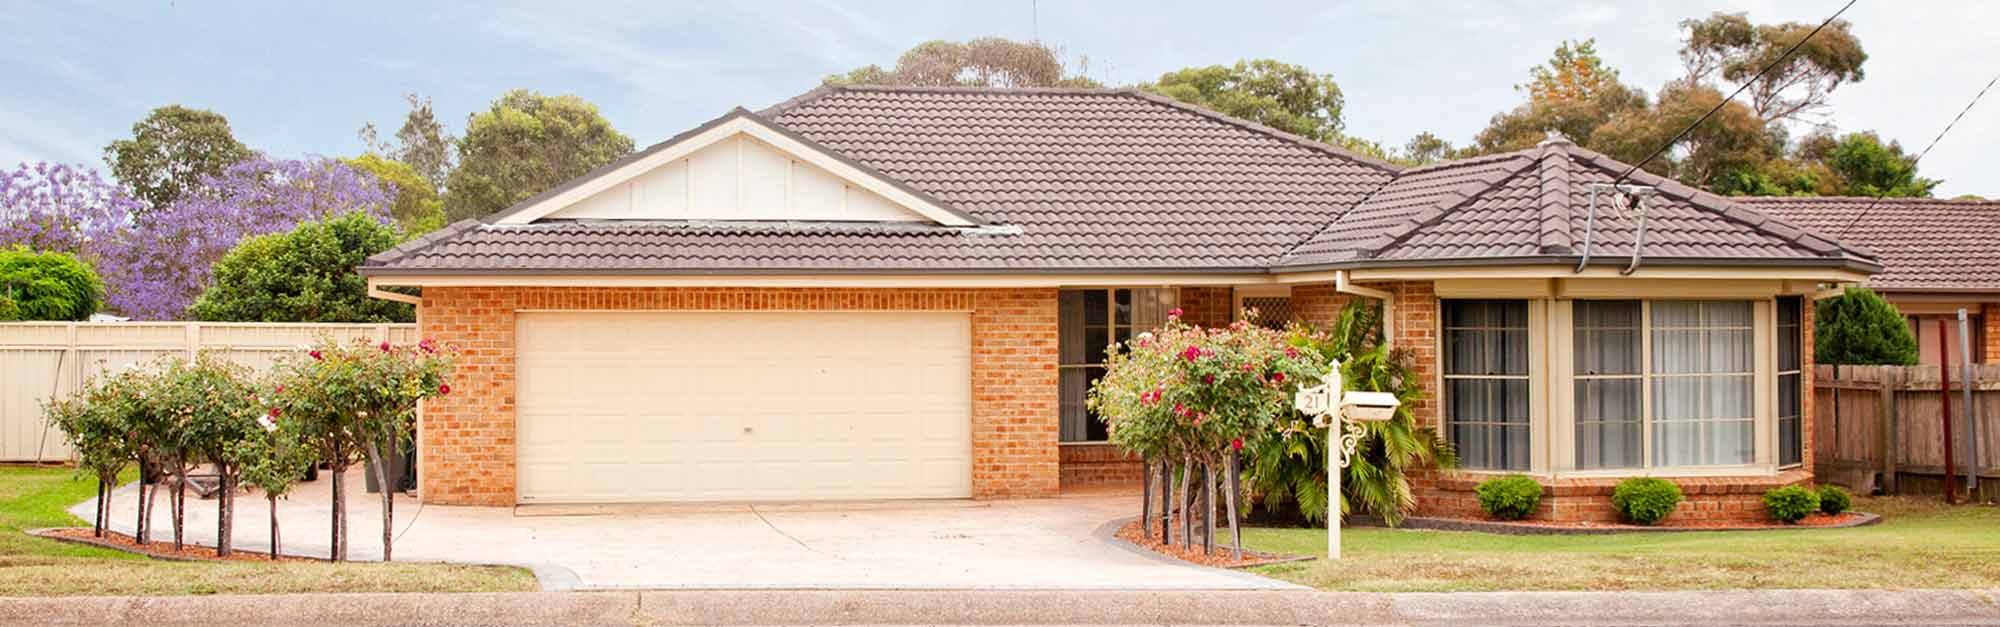 21 Station Lane, Lochinvar